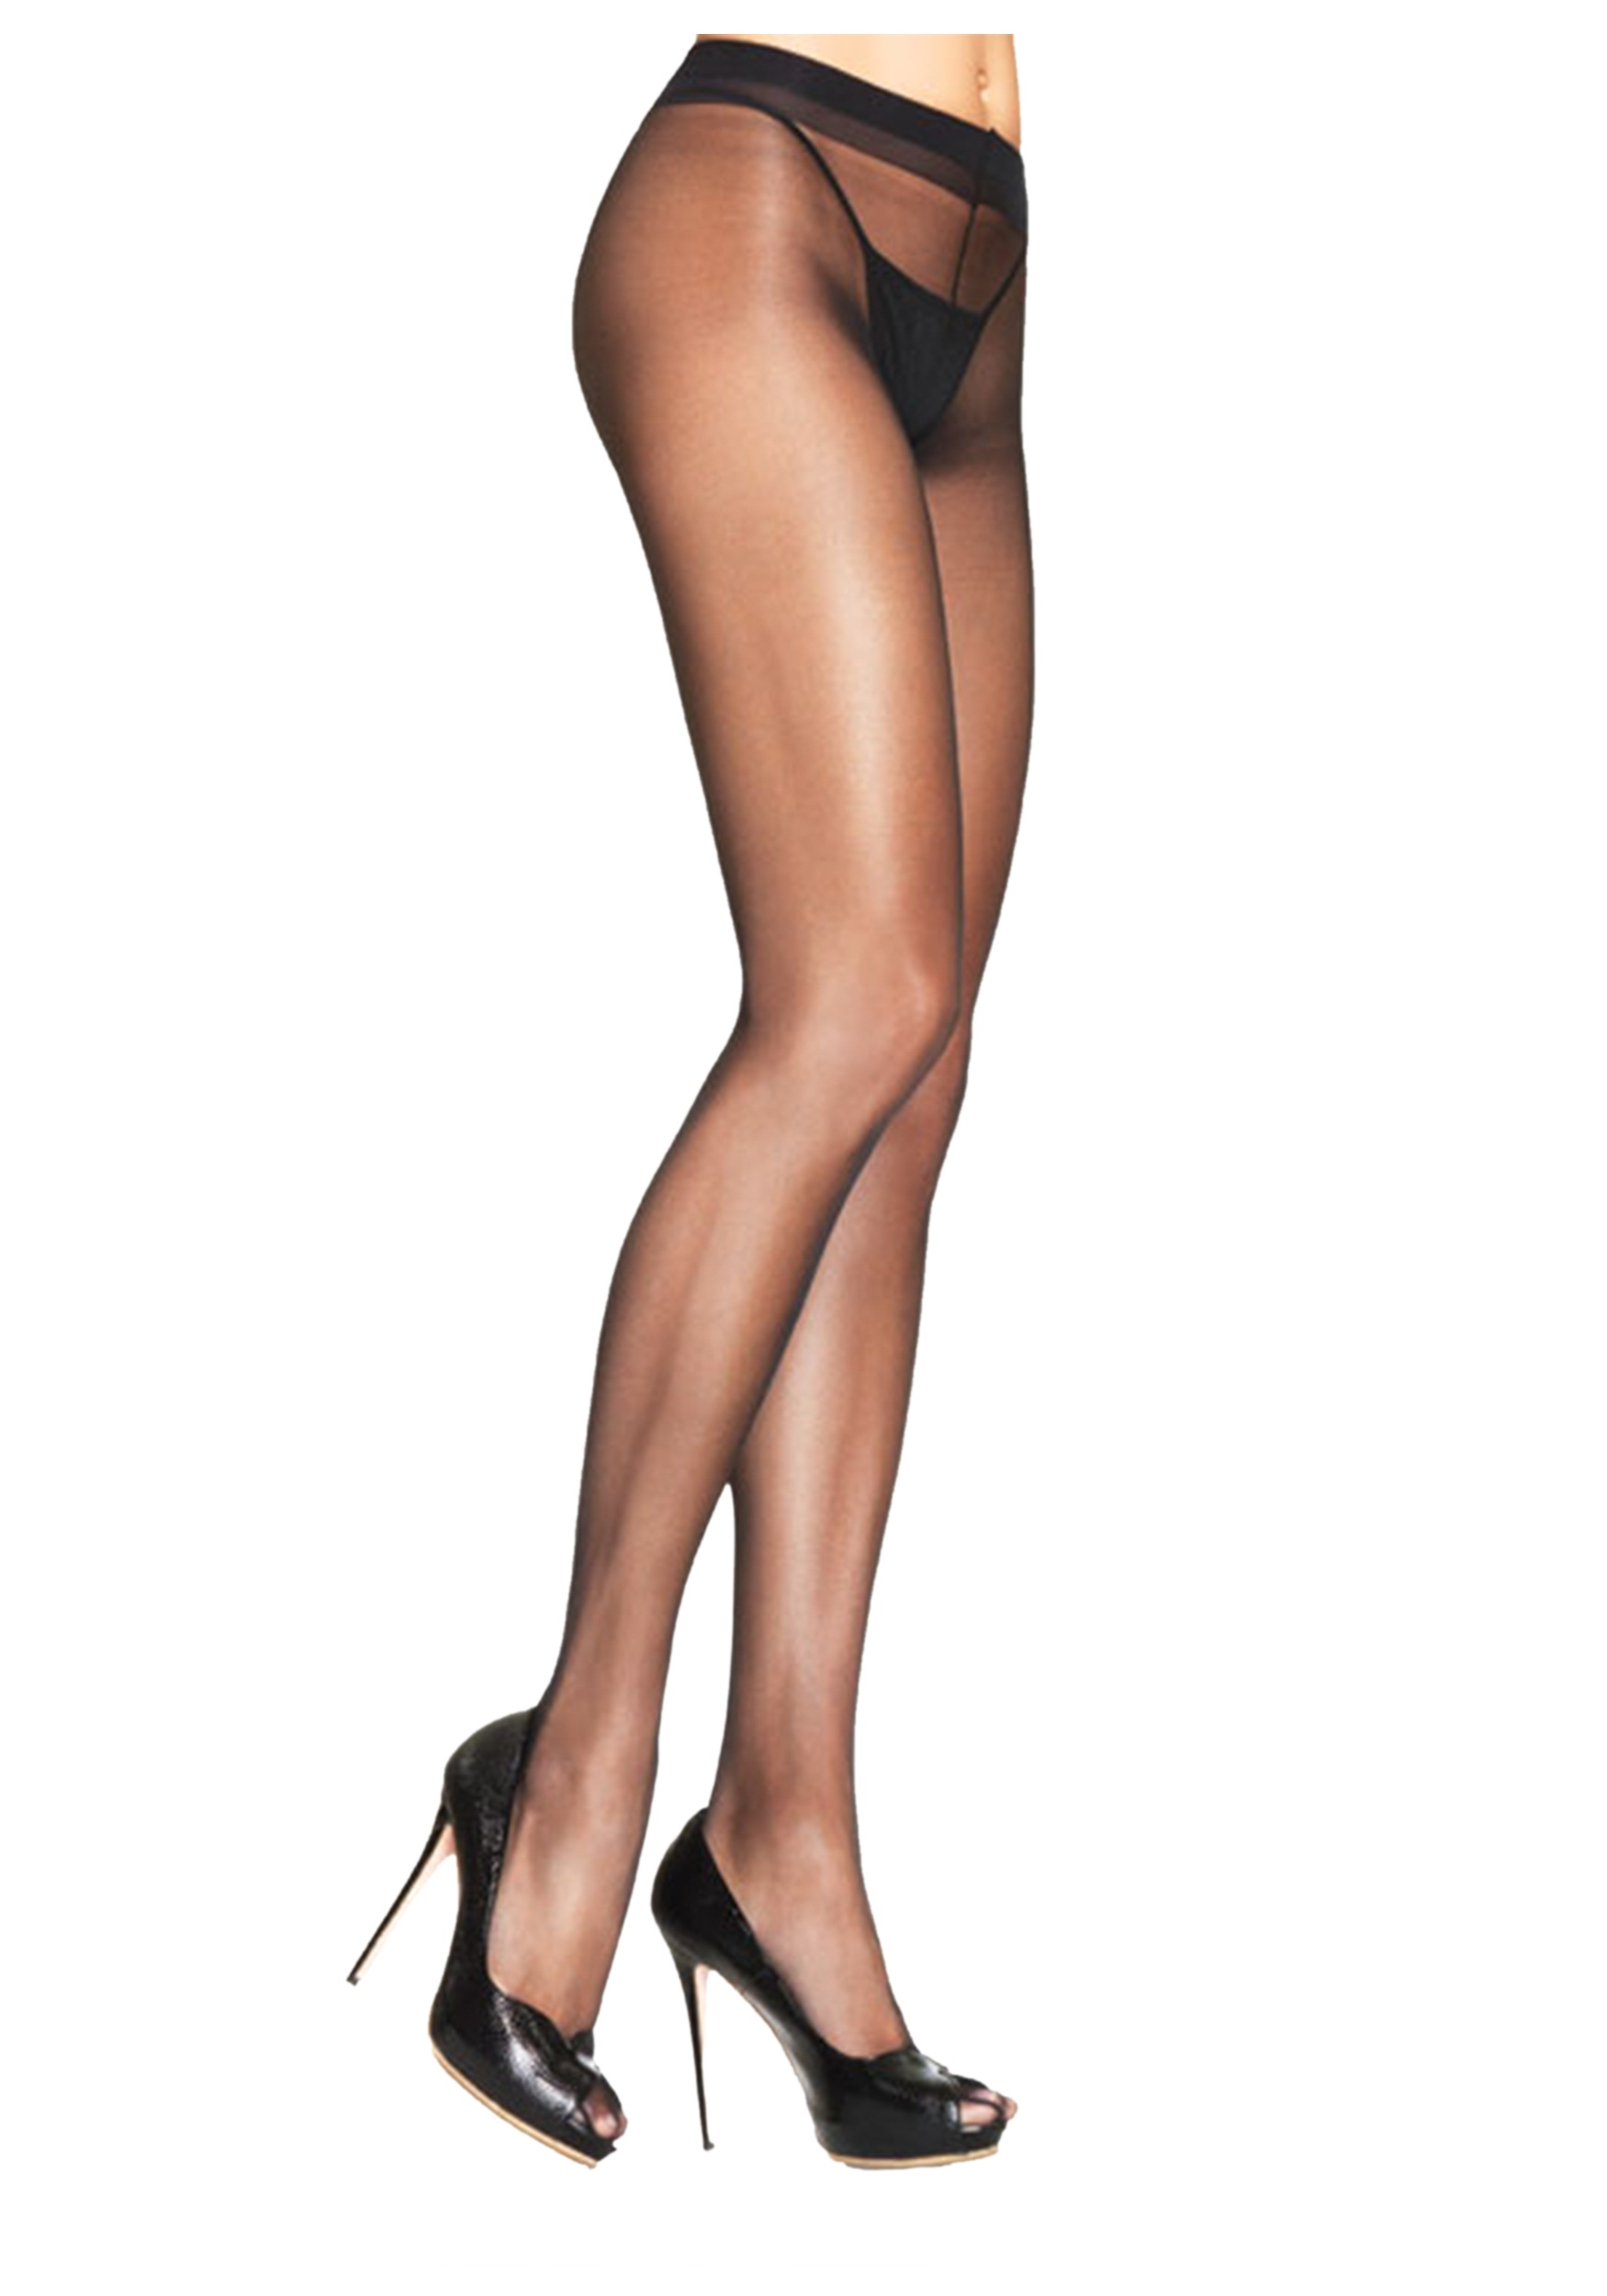 Black sheer pantyhose